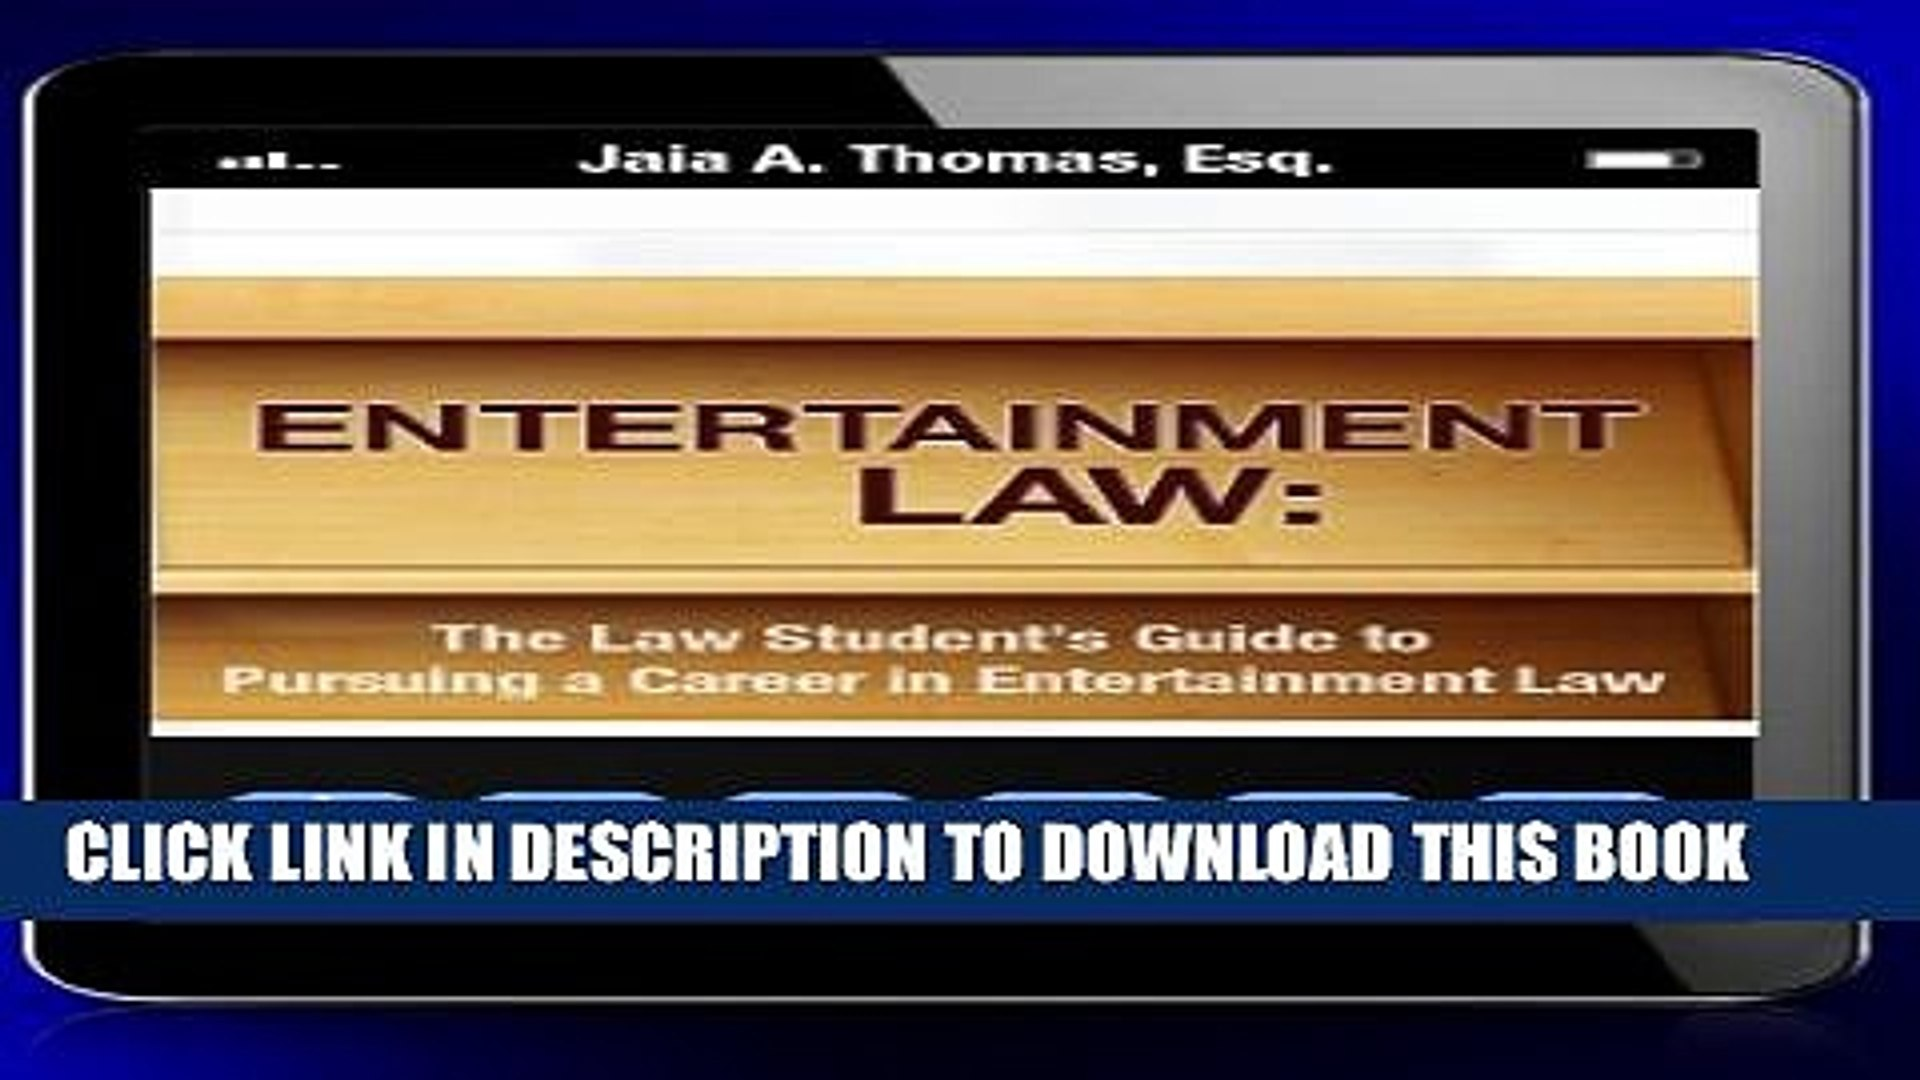 [New] Entertainment Law: The Law Student s Guide to Pursuing a Career in Entertainment Law